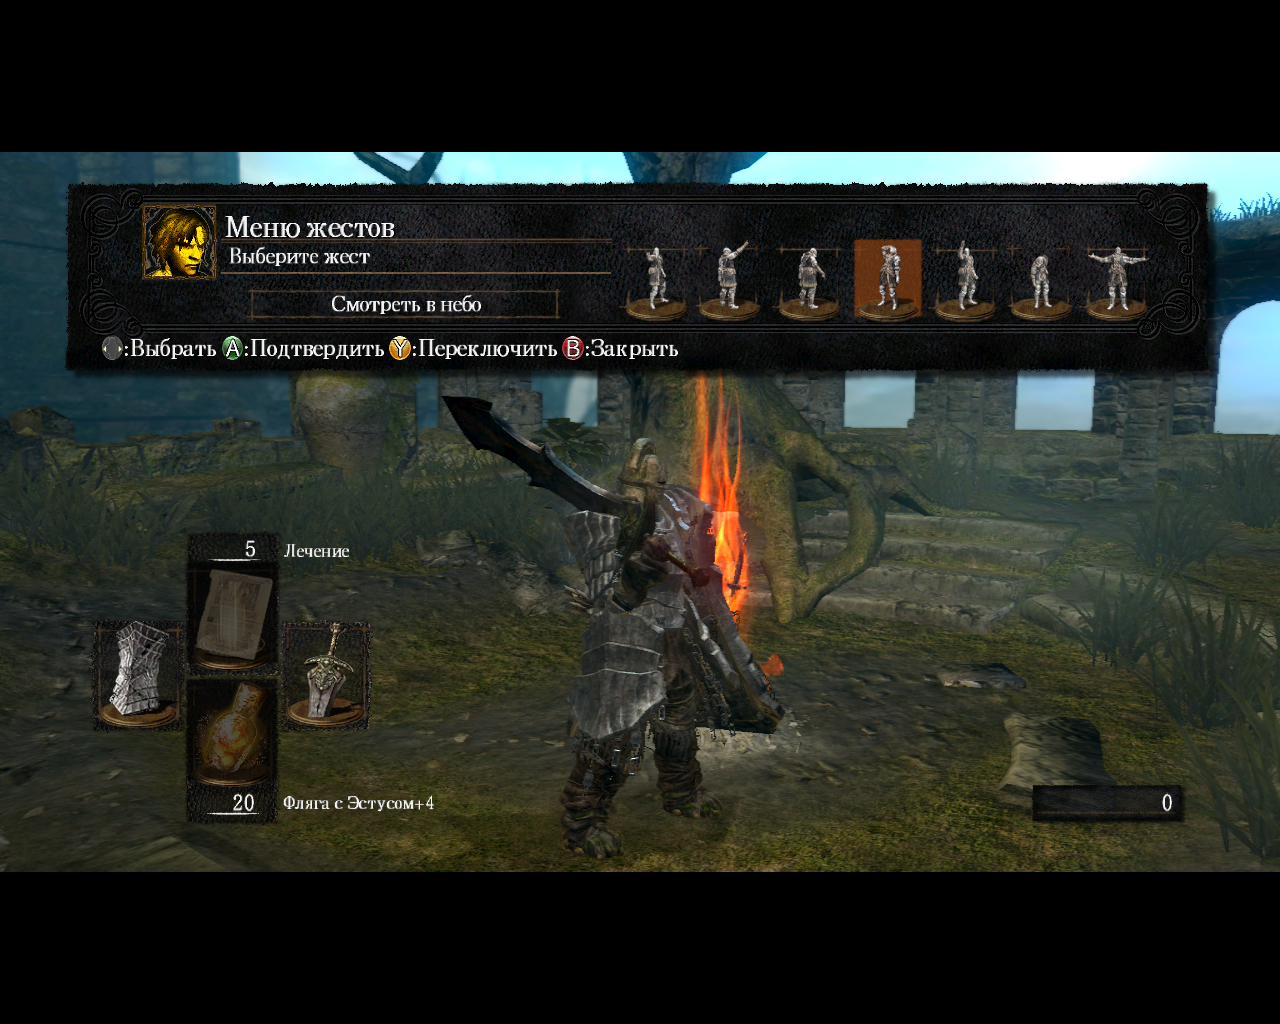 Dark Souls: Prepare to Die Edition Windows There's an assortment of gestures to help you communicate with other players